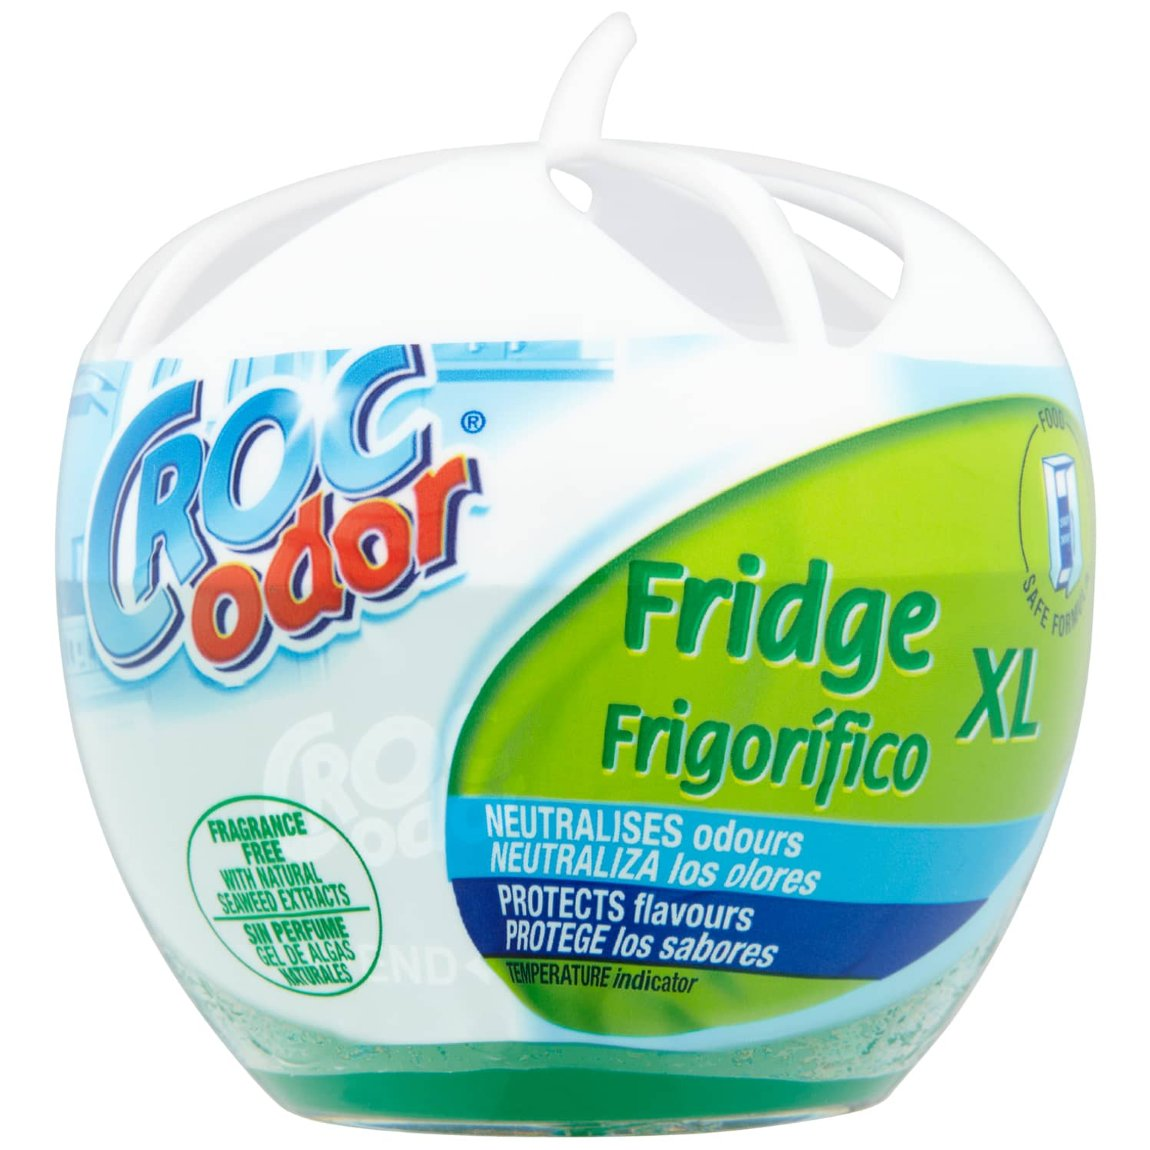 Croc Odor Fridge Fresh 140g